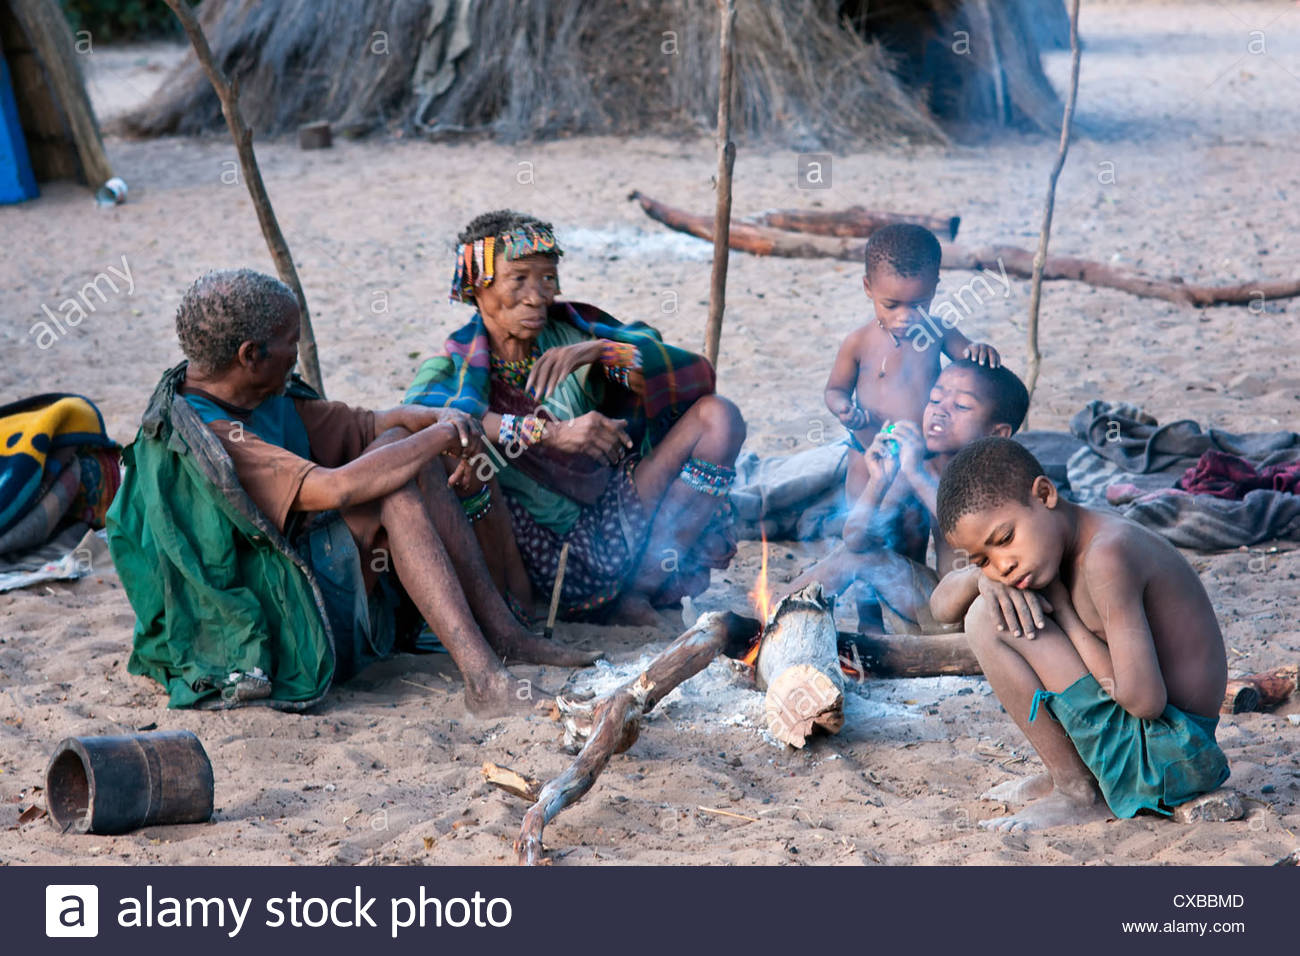 Jul'hoan !Kung Bushmen family around a fire in their village, Bushmanland, Kalahari Desert, Namibia, Africa - Stock Image